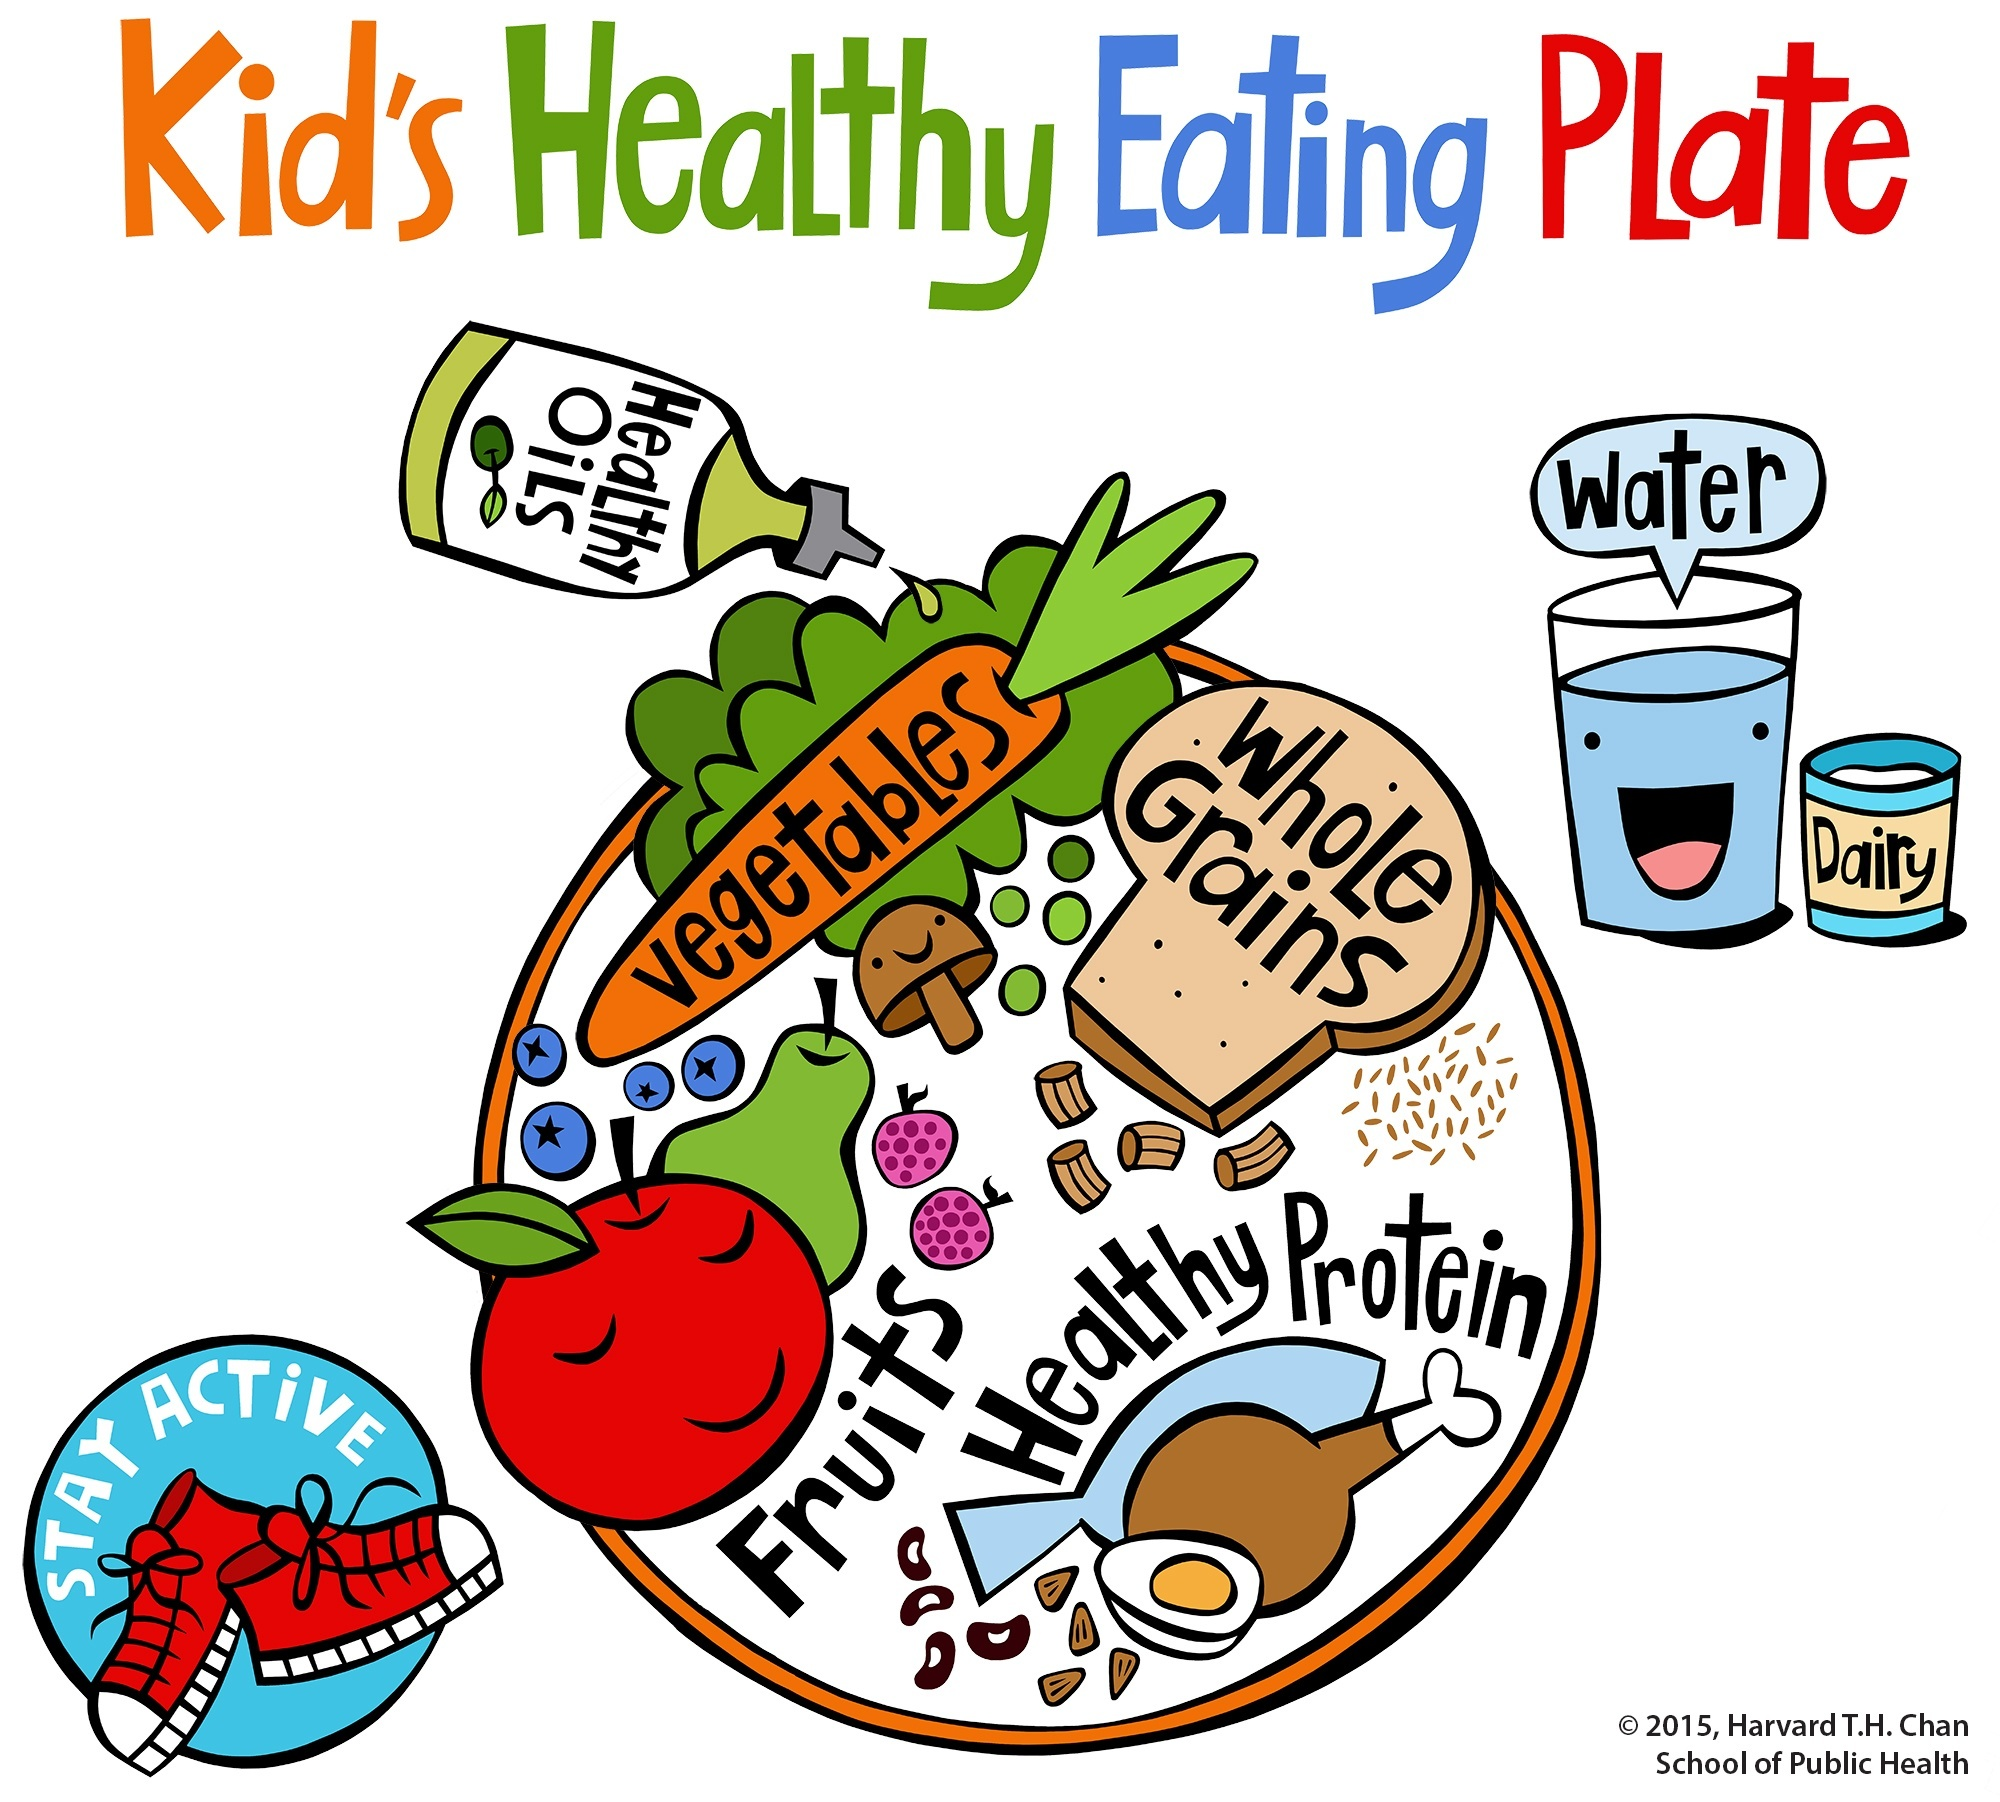 hight resolution of kid s healthy eating plate